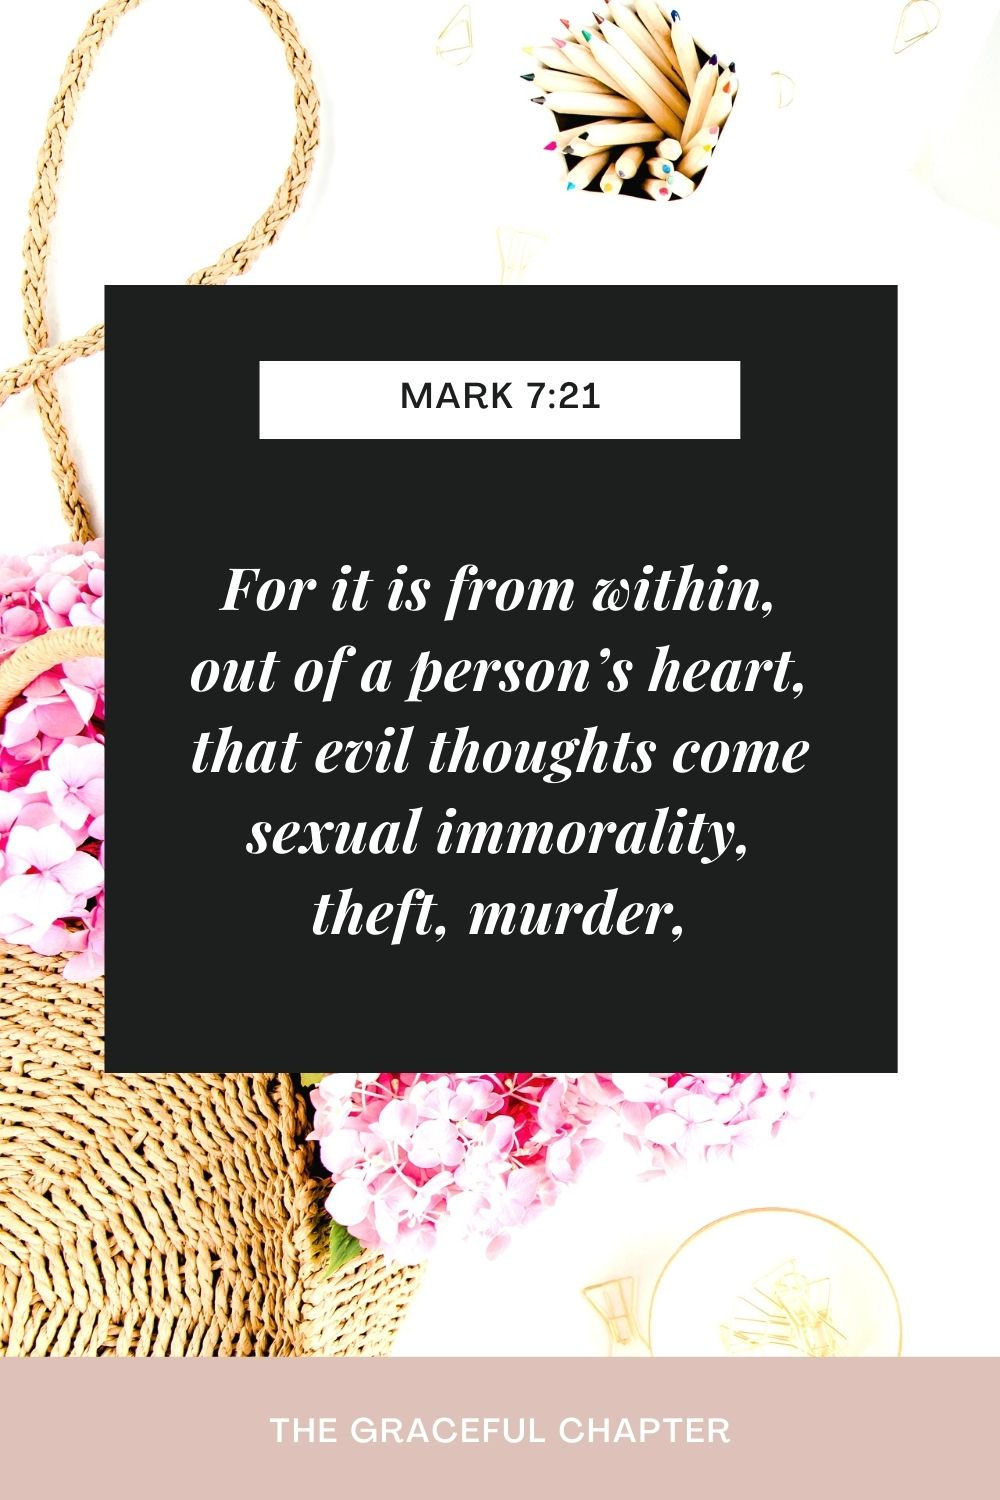 For it is from within, out of a person's heart, that evil thoughts come sexual immorality, theft, murder, Mark 7:21